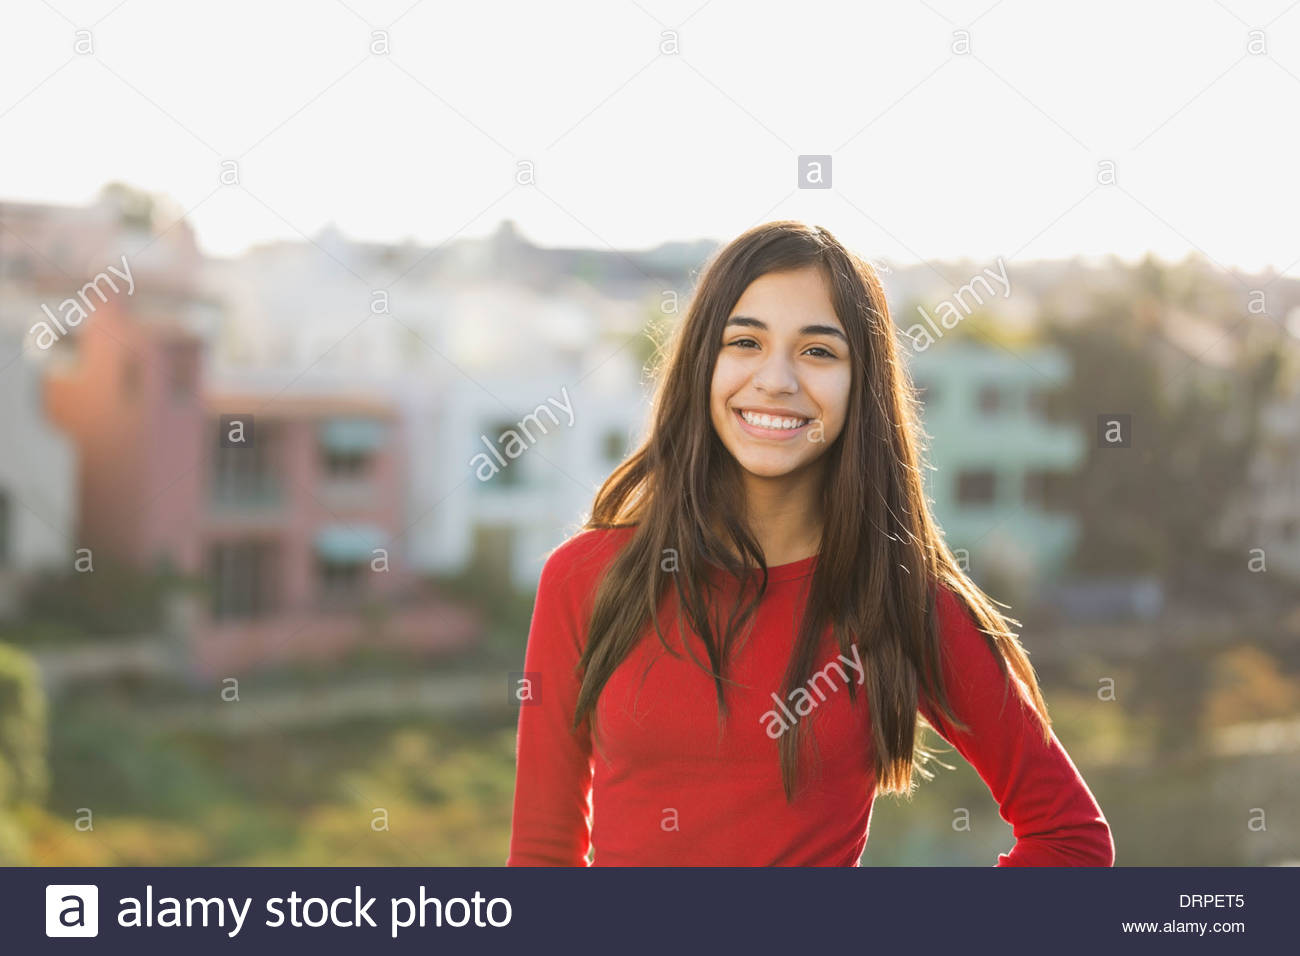 Portrait of Girl standing outdoors Photo Stock